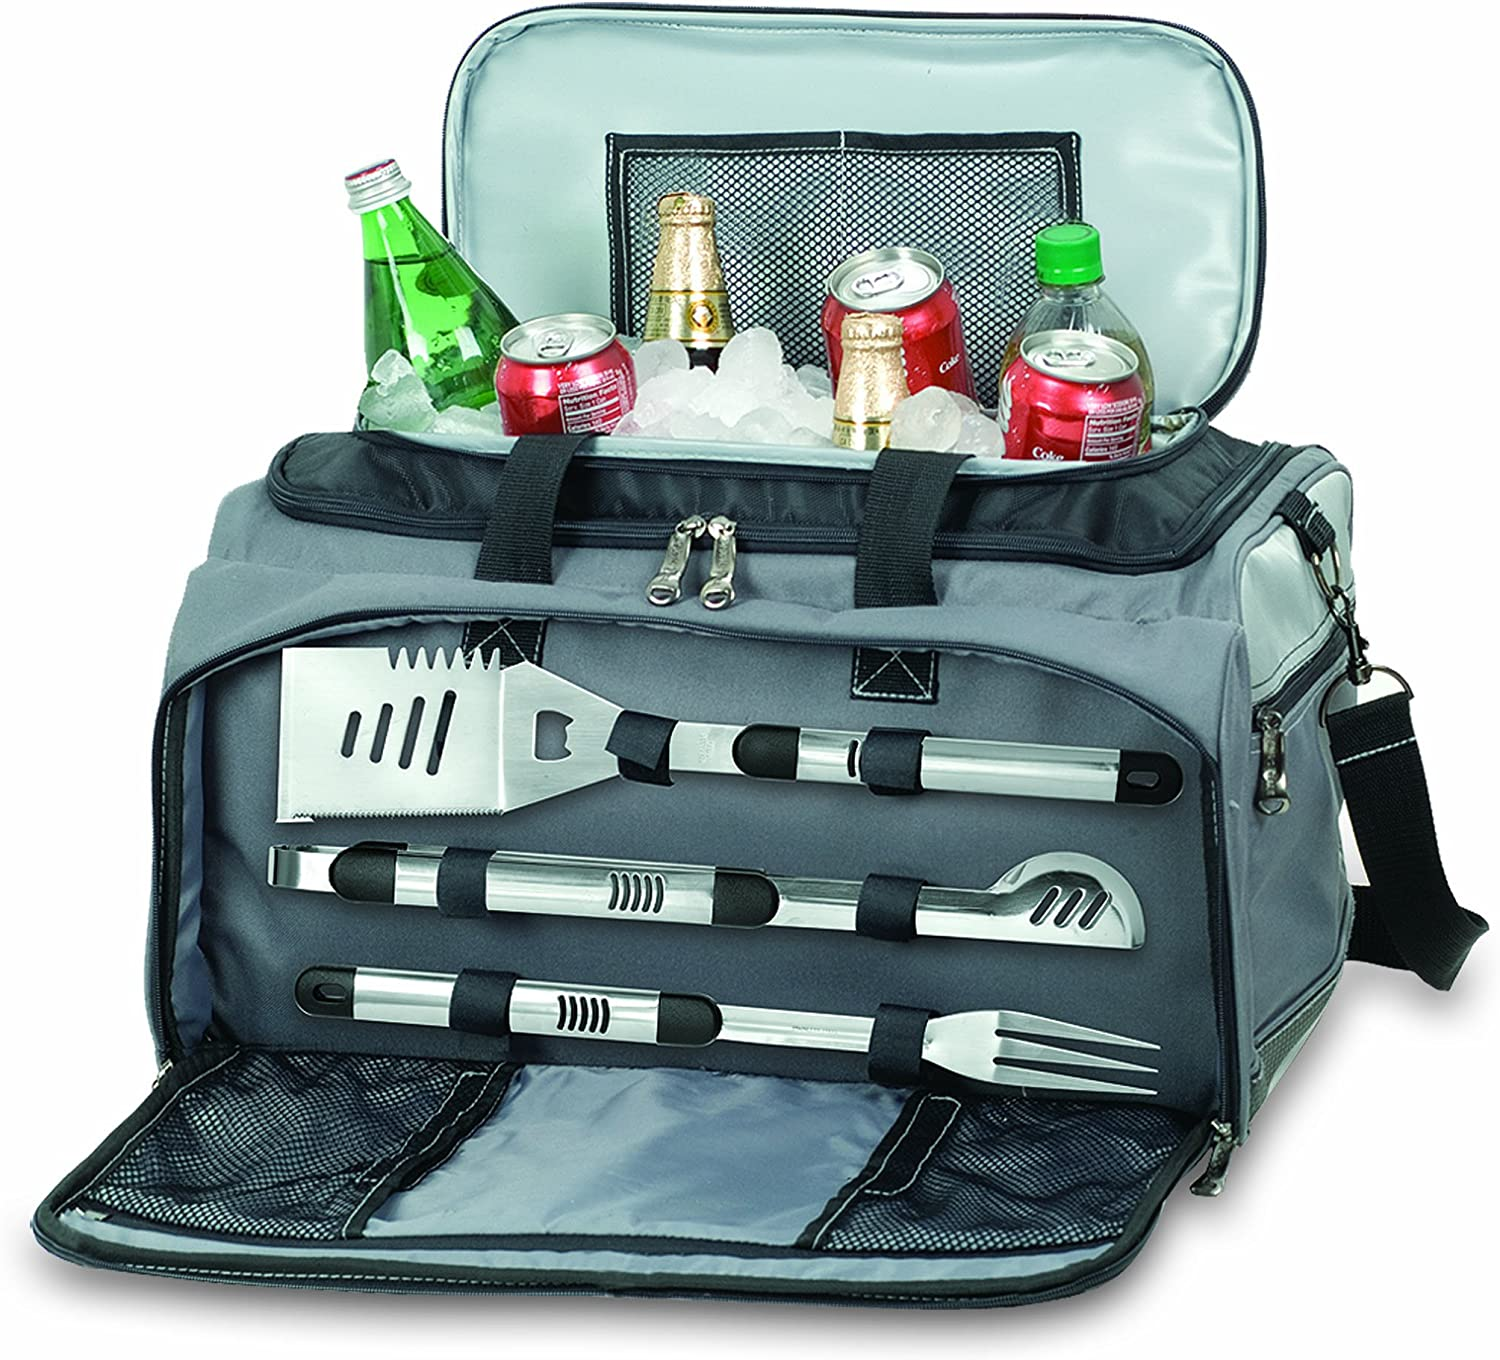 ONIVA – a Picnic Time Brand Buccaneer All-In-One Tailgating BBQ Grill Cooler Set